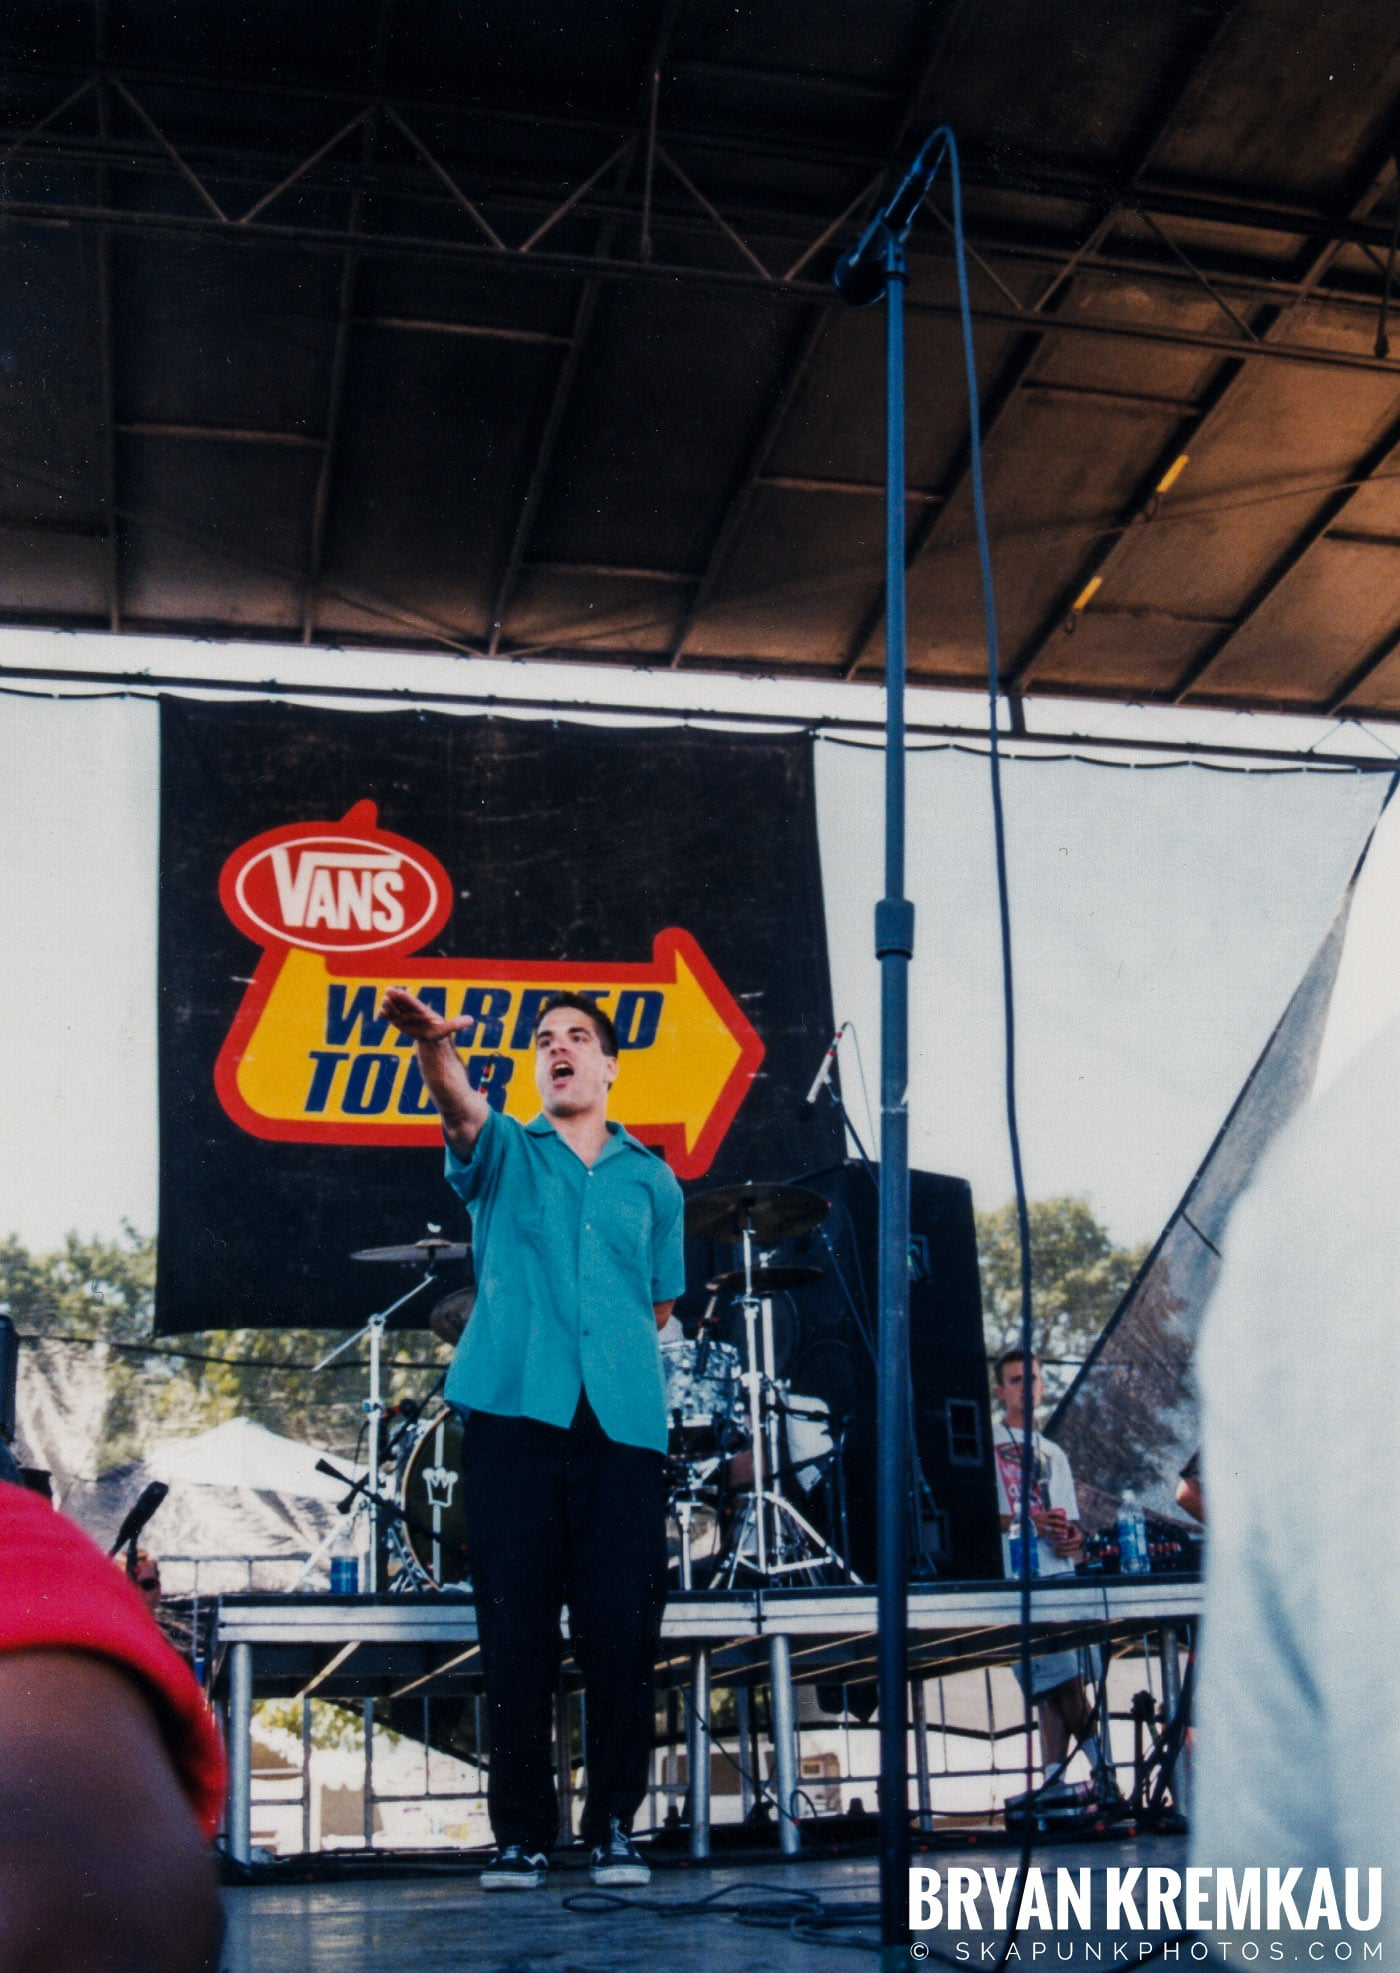 22 Jacks @ Vans Warped Tour, Randall's Island, NYC - 8.1.98 (3)